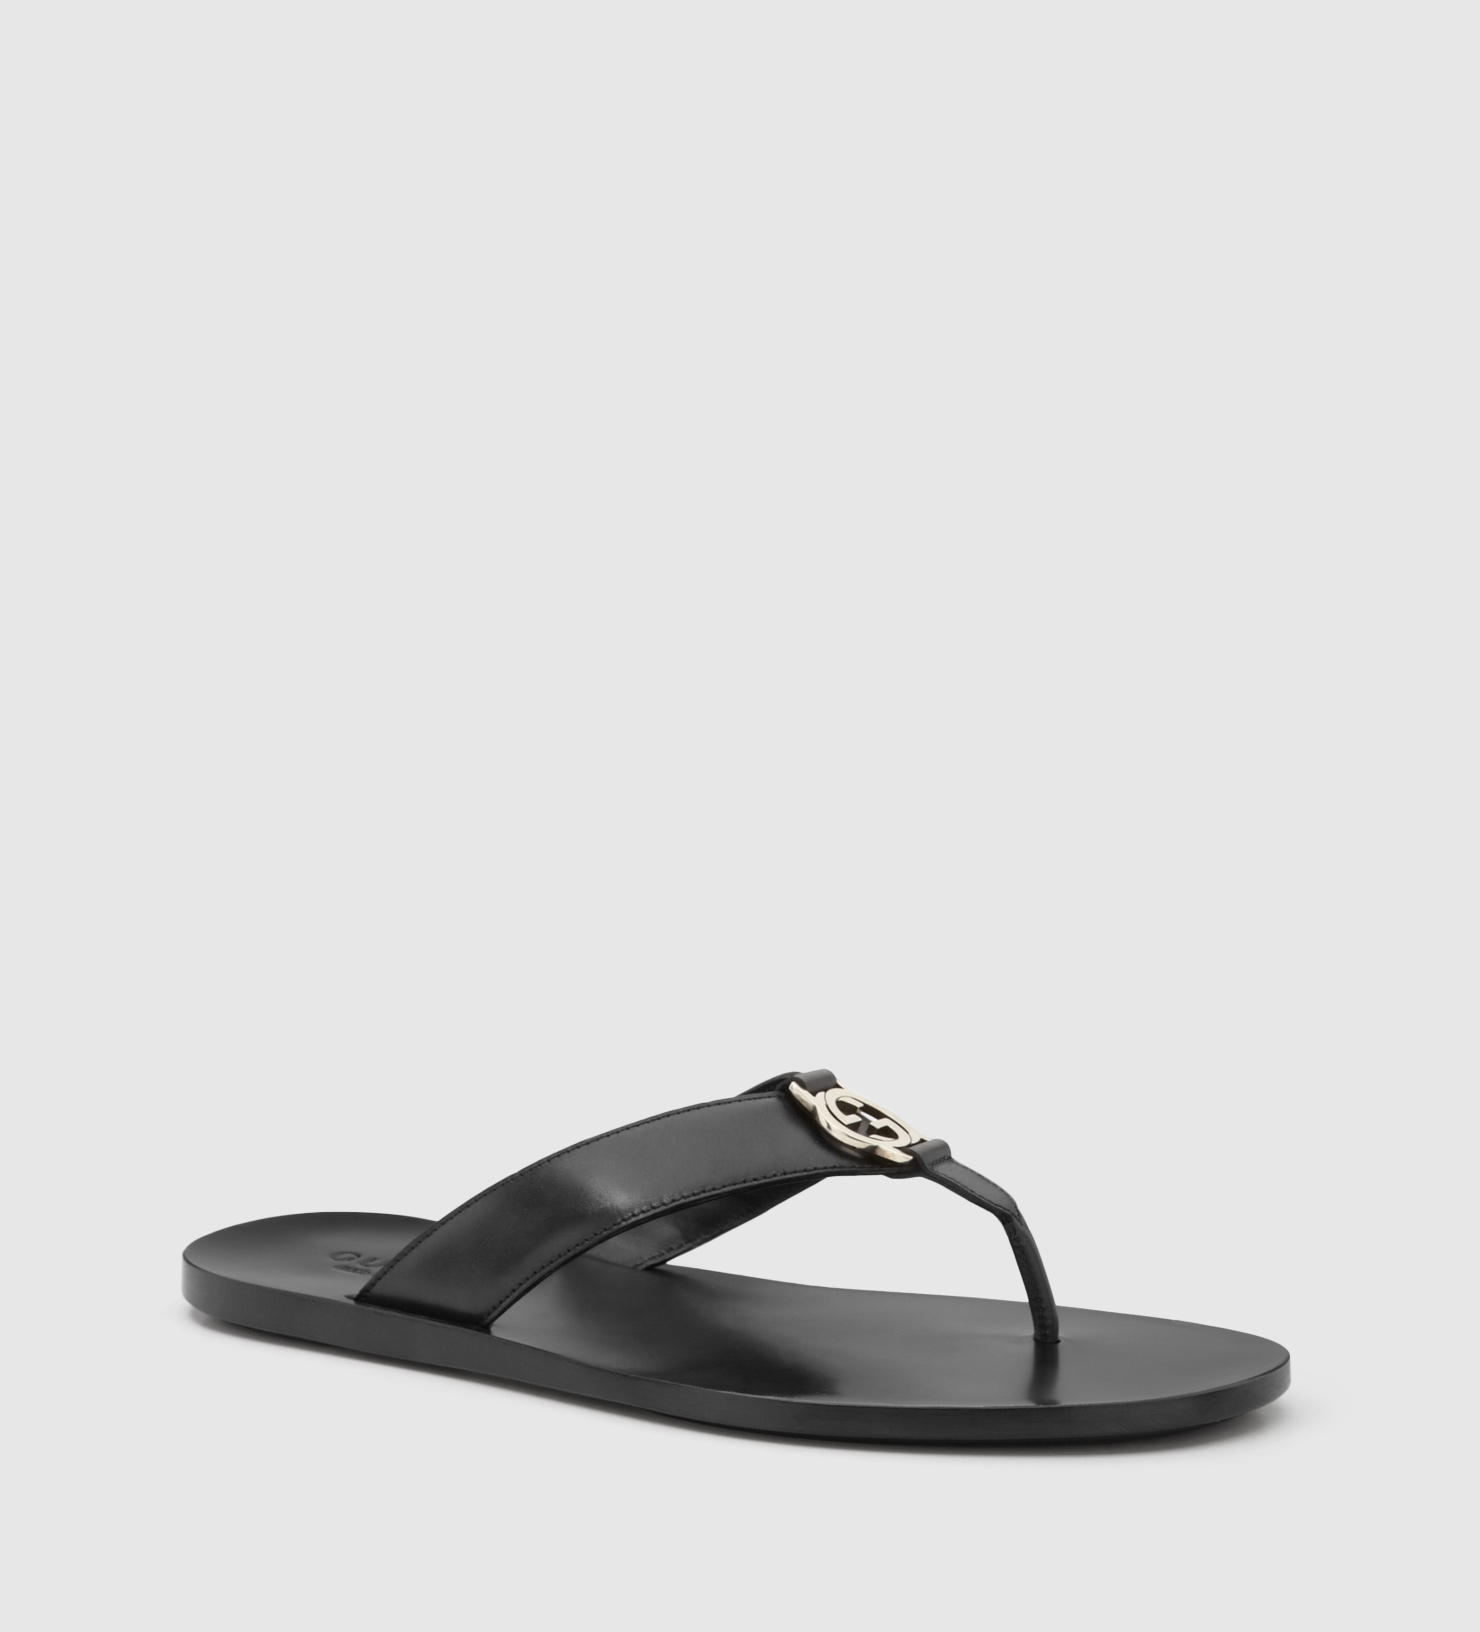 e4dc5ca0ea1 Lyst - Gucci Black Leather Thong Sandal in Black